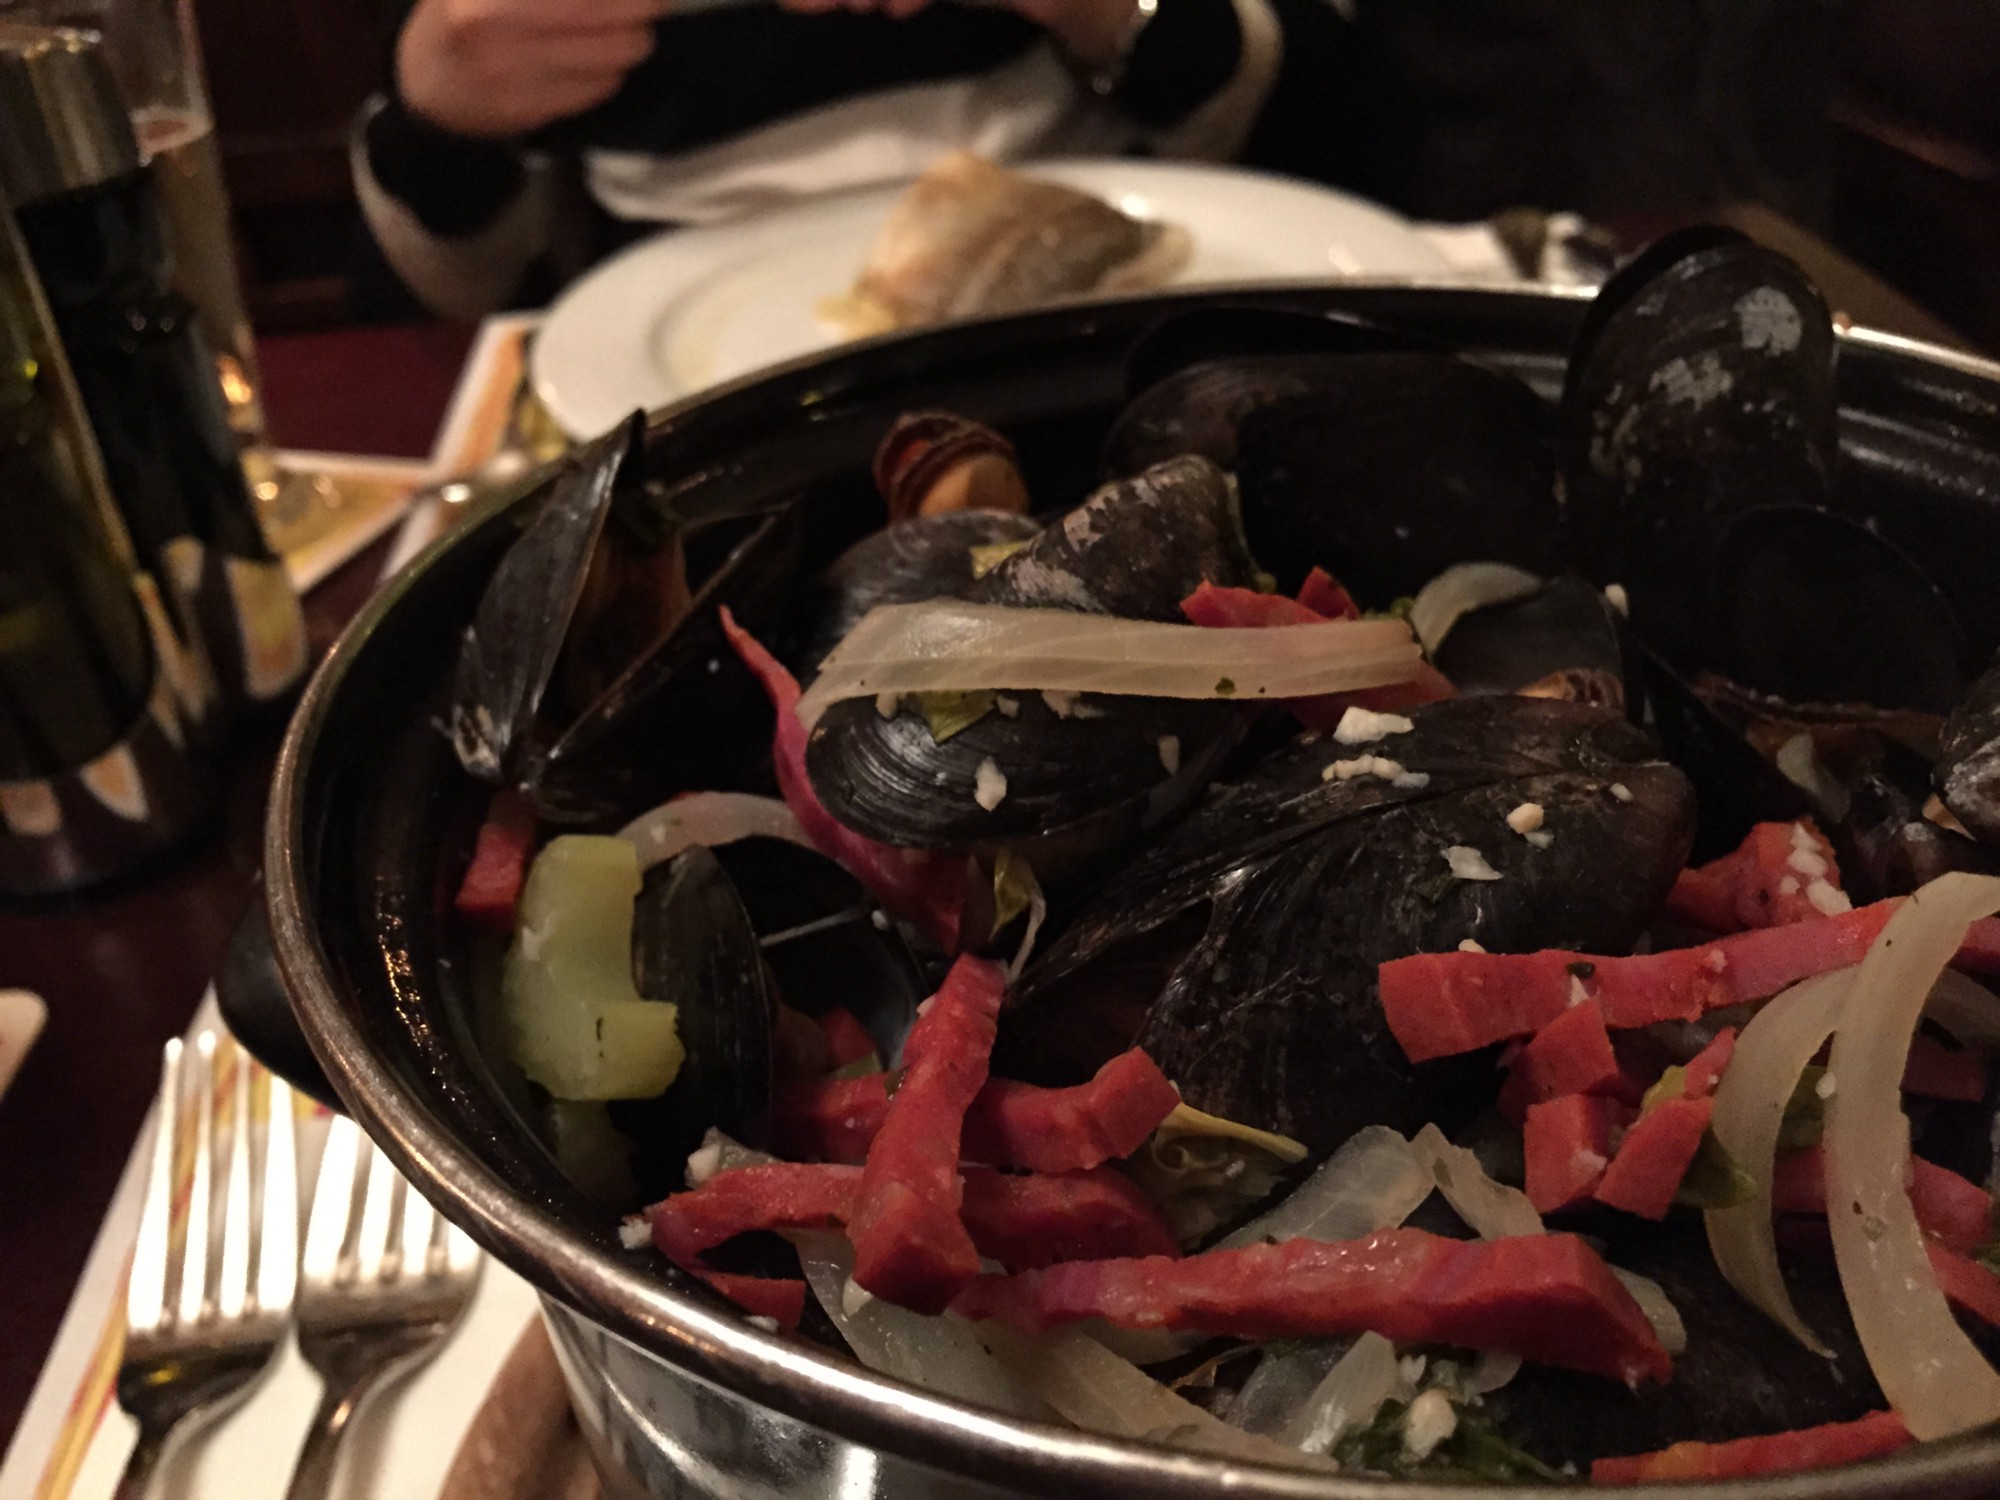 We decided to escape the traditional fares and opted for something international. This dish is a pot of mussels at a Belgian Restaurant.